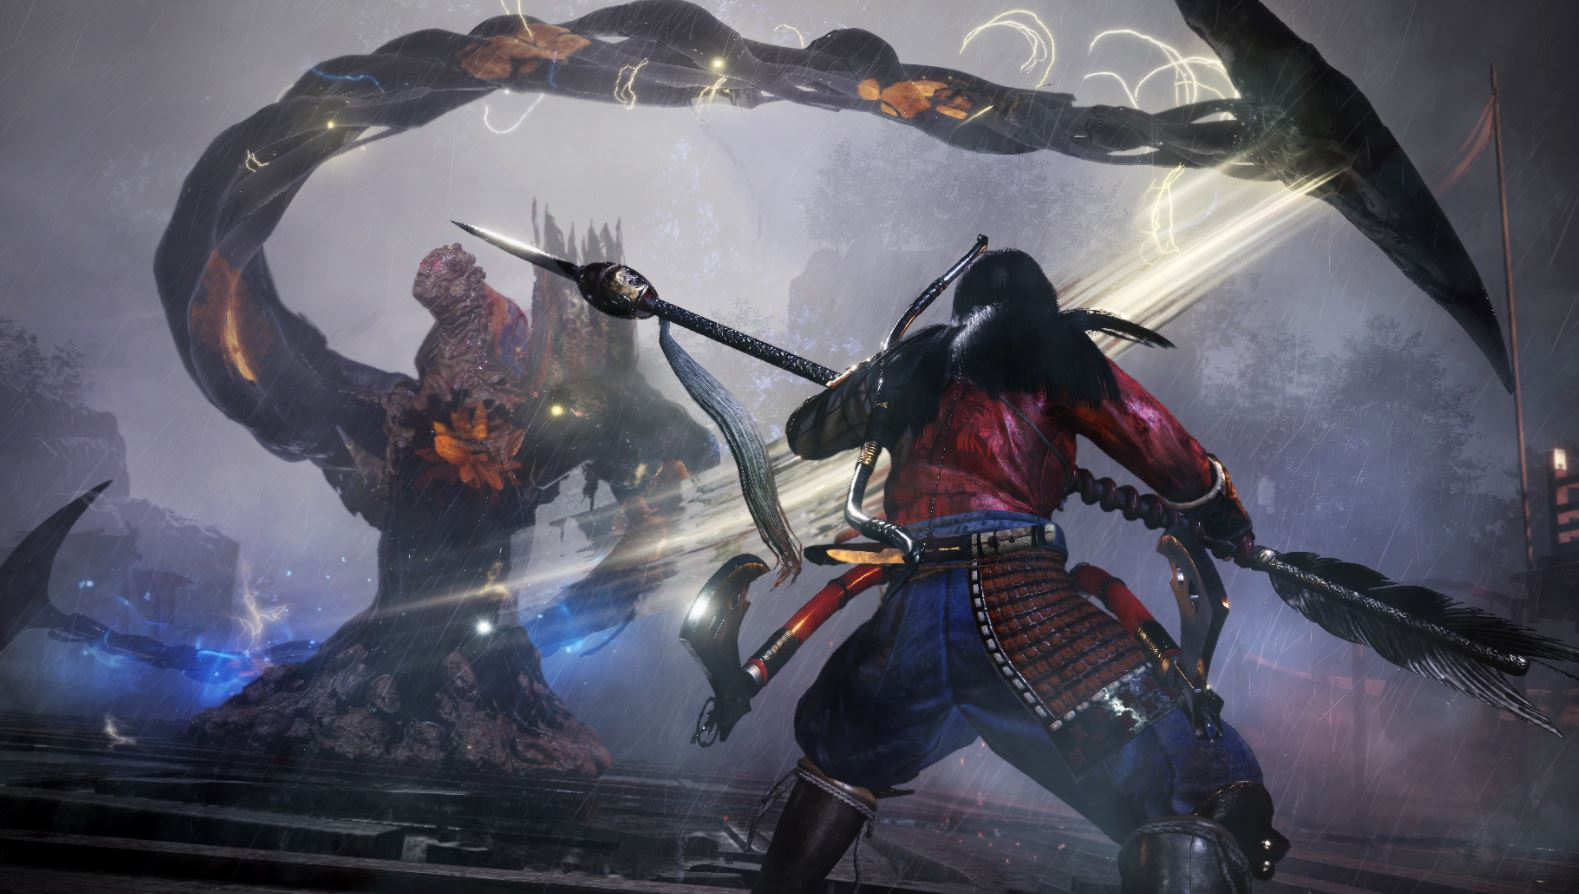 nioh-2-darkness-in-the-capital-dlc-ps4-review